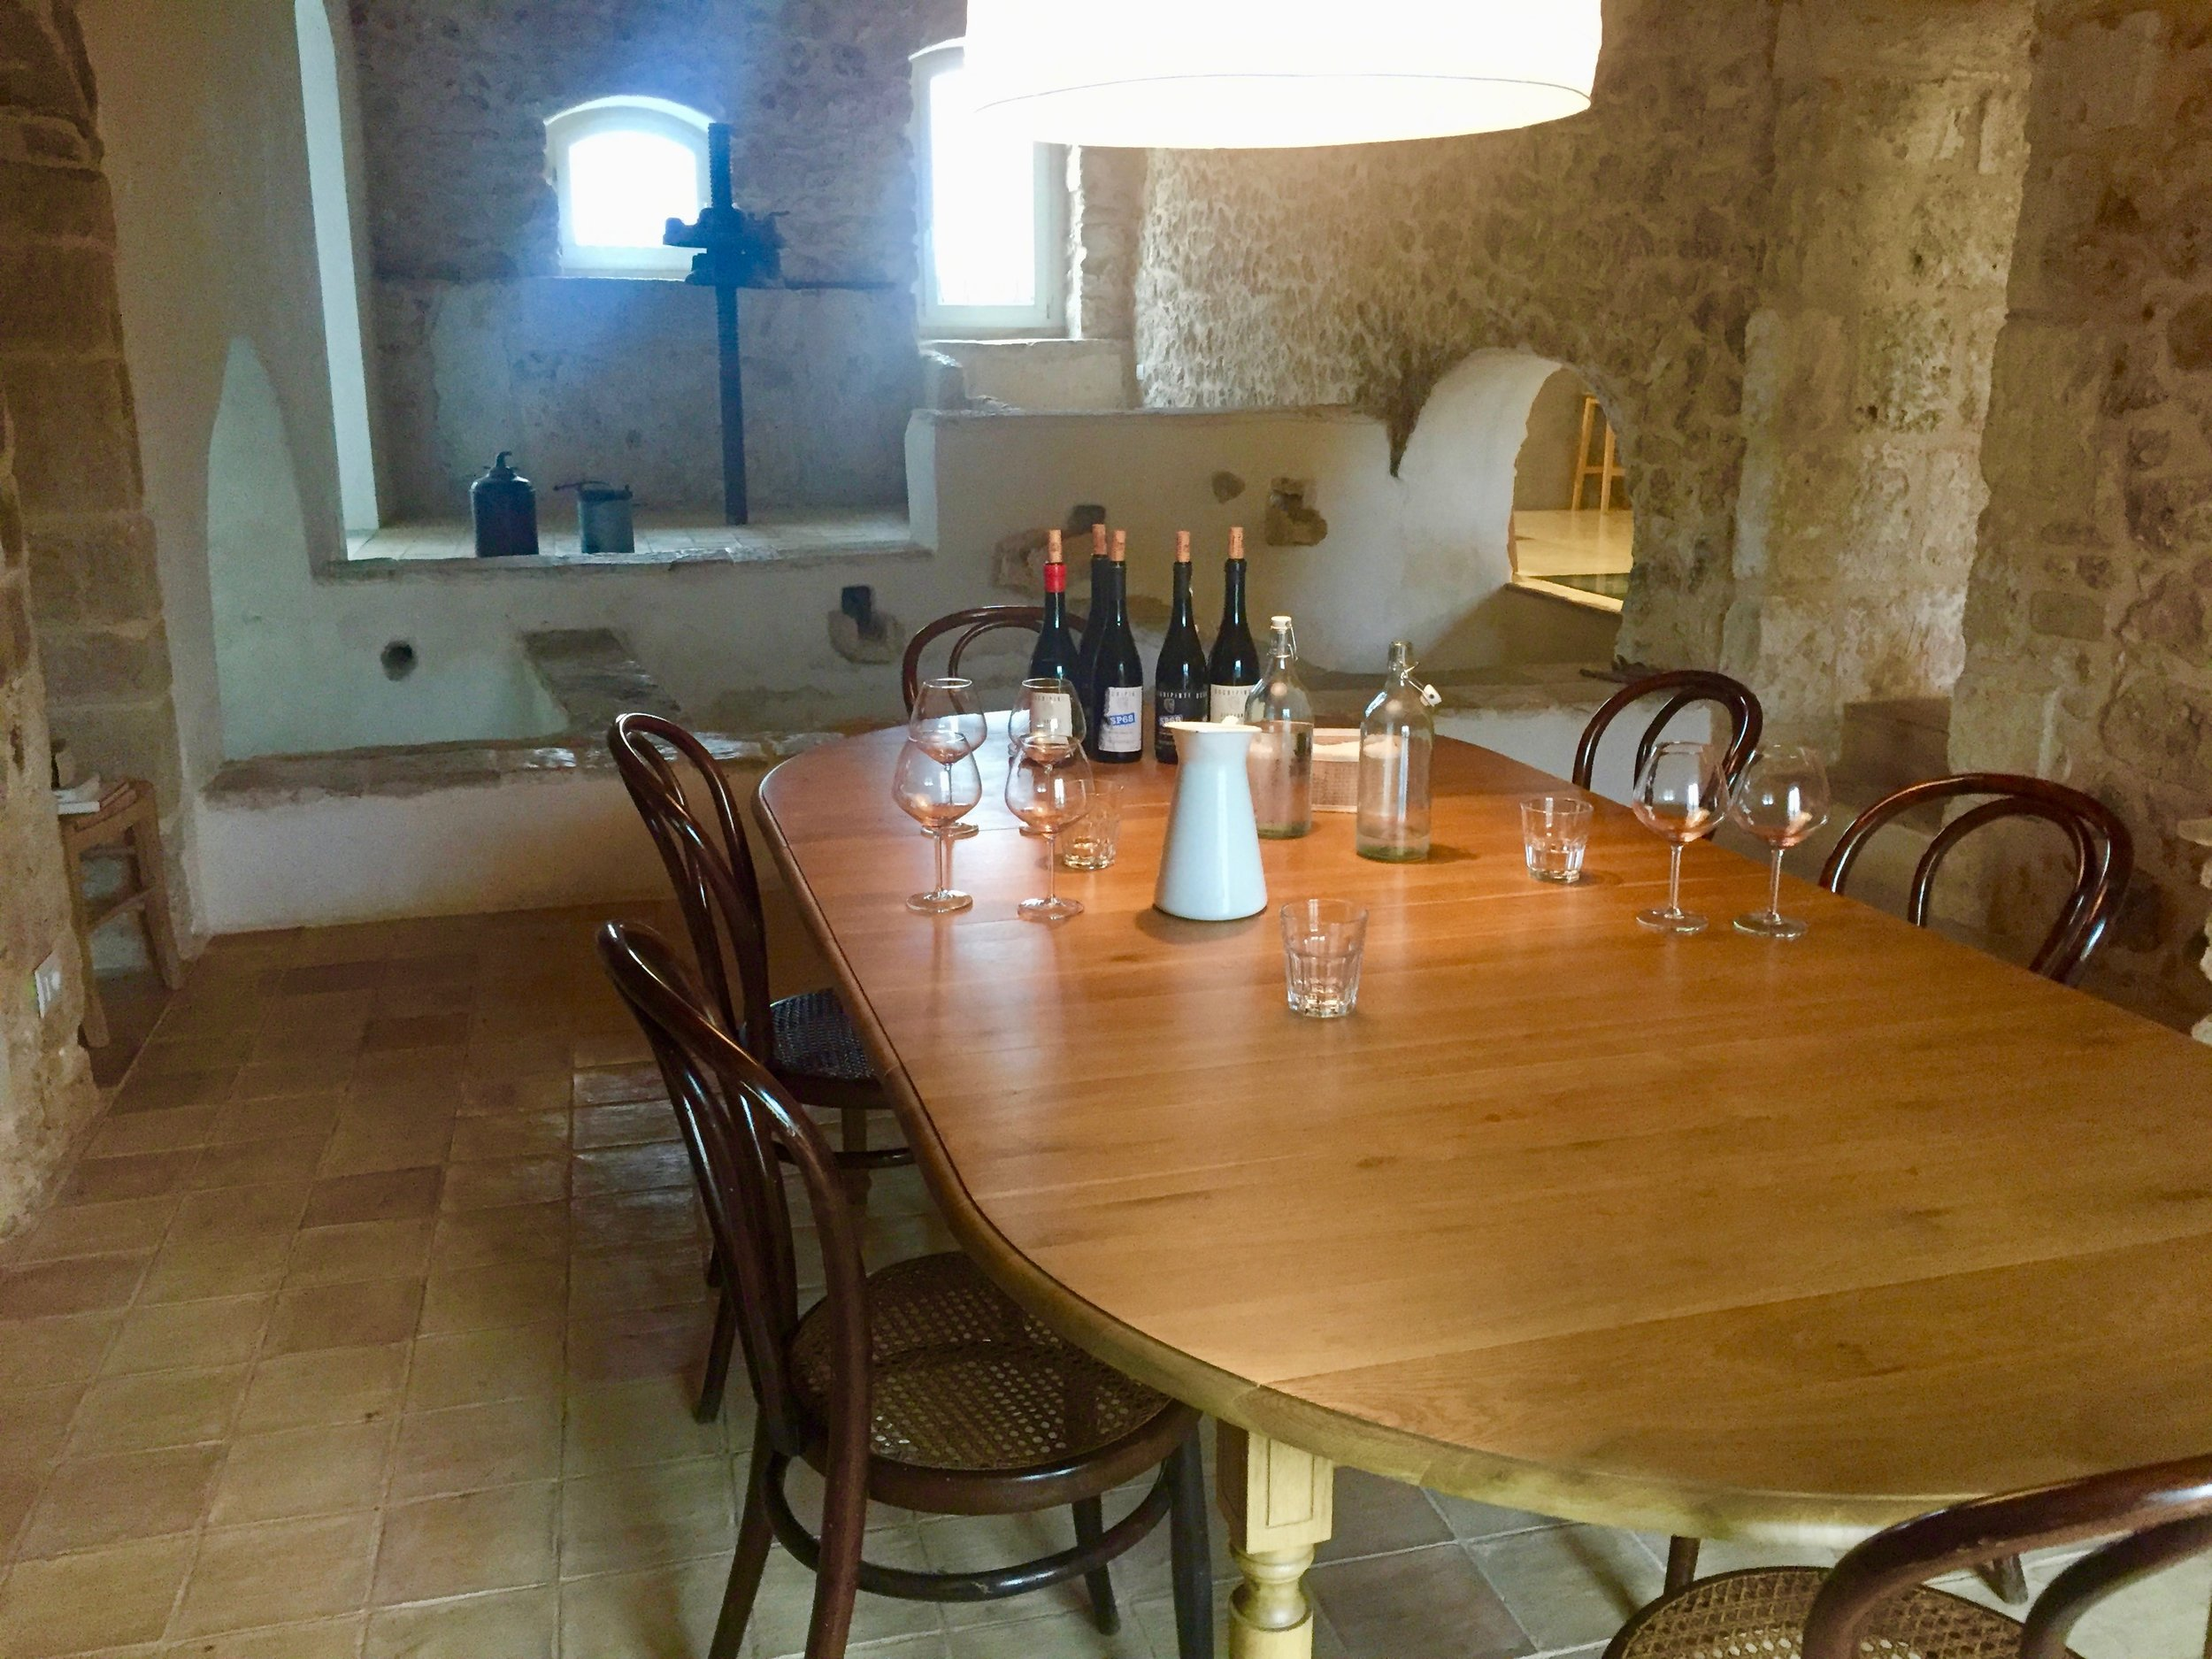 The Occhipinti tasting room is in a beautifully renovated antique press room